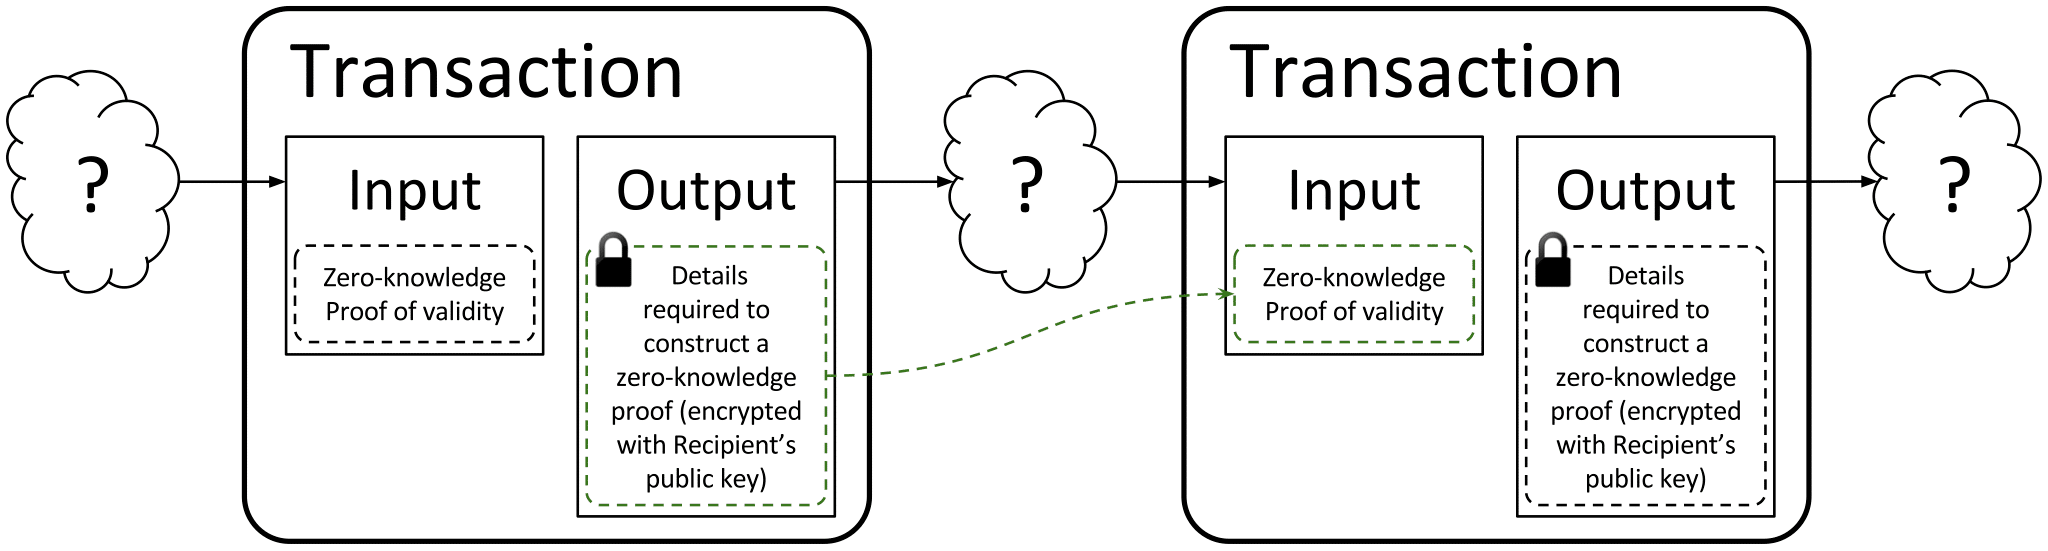 A high-level skeleton diagram of a zero-knowledge proof transaction